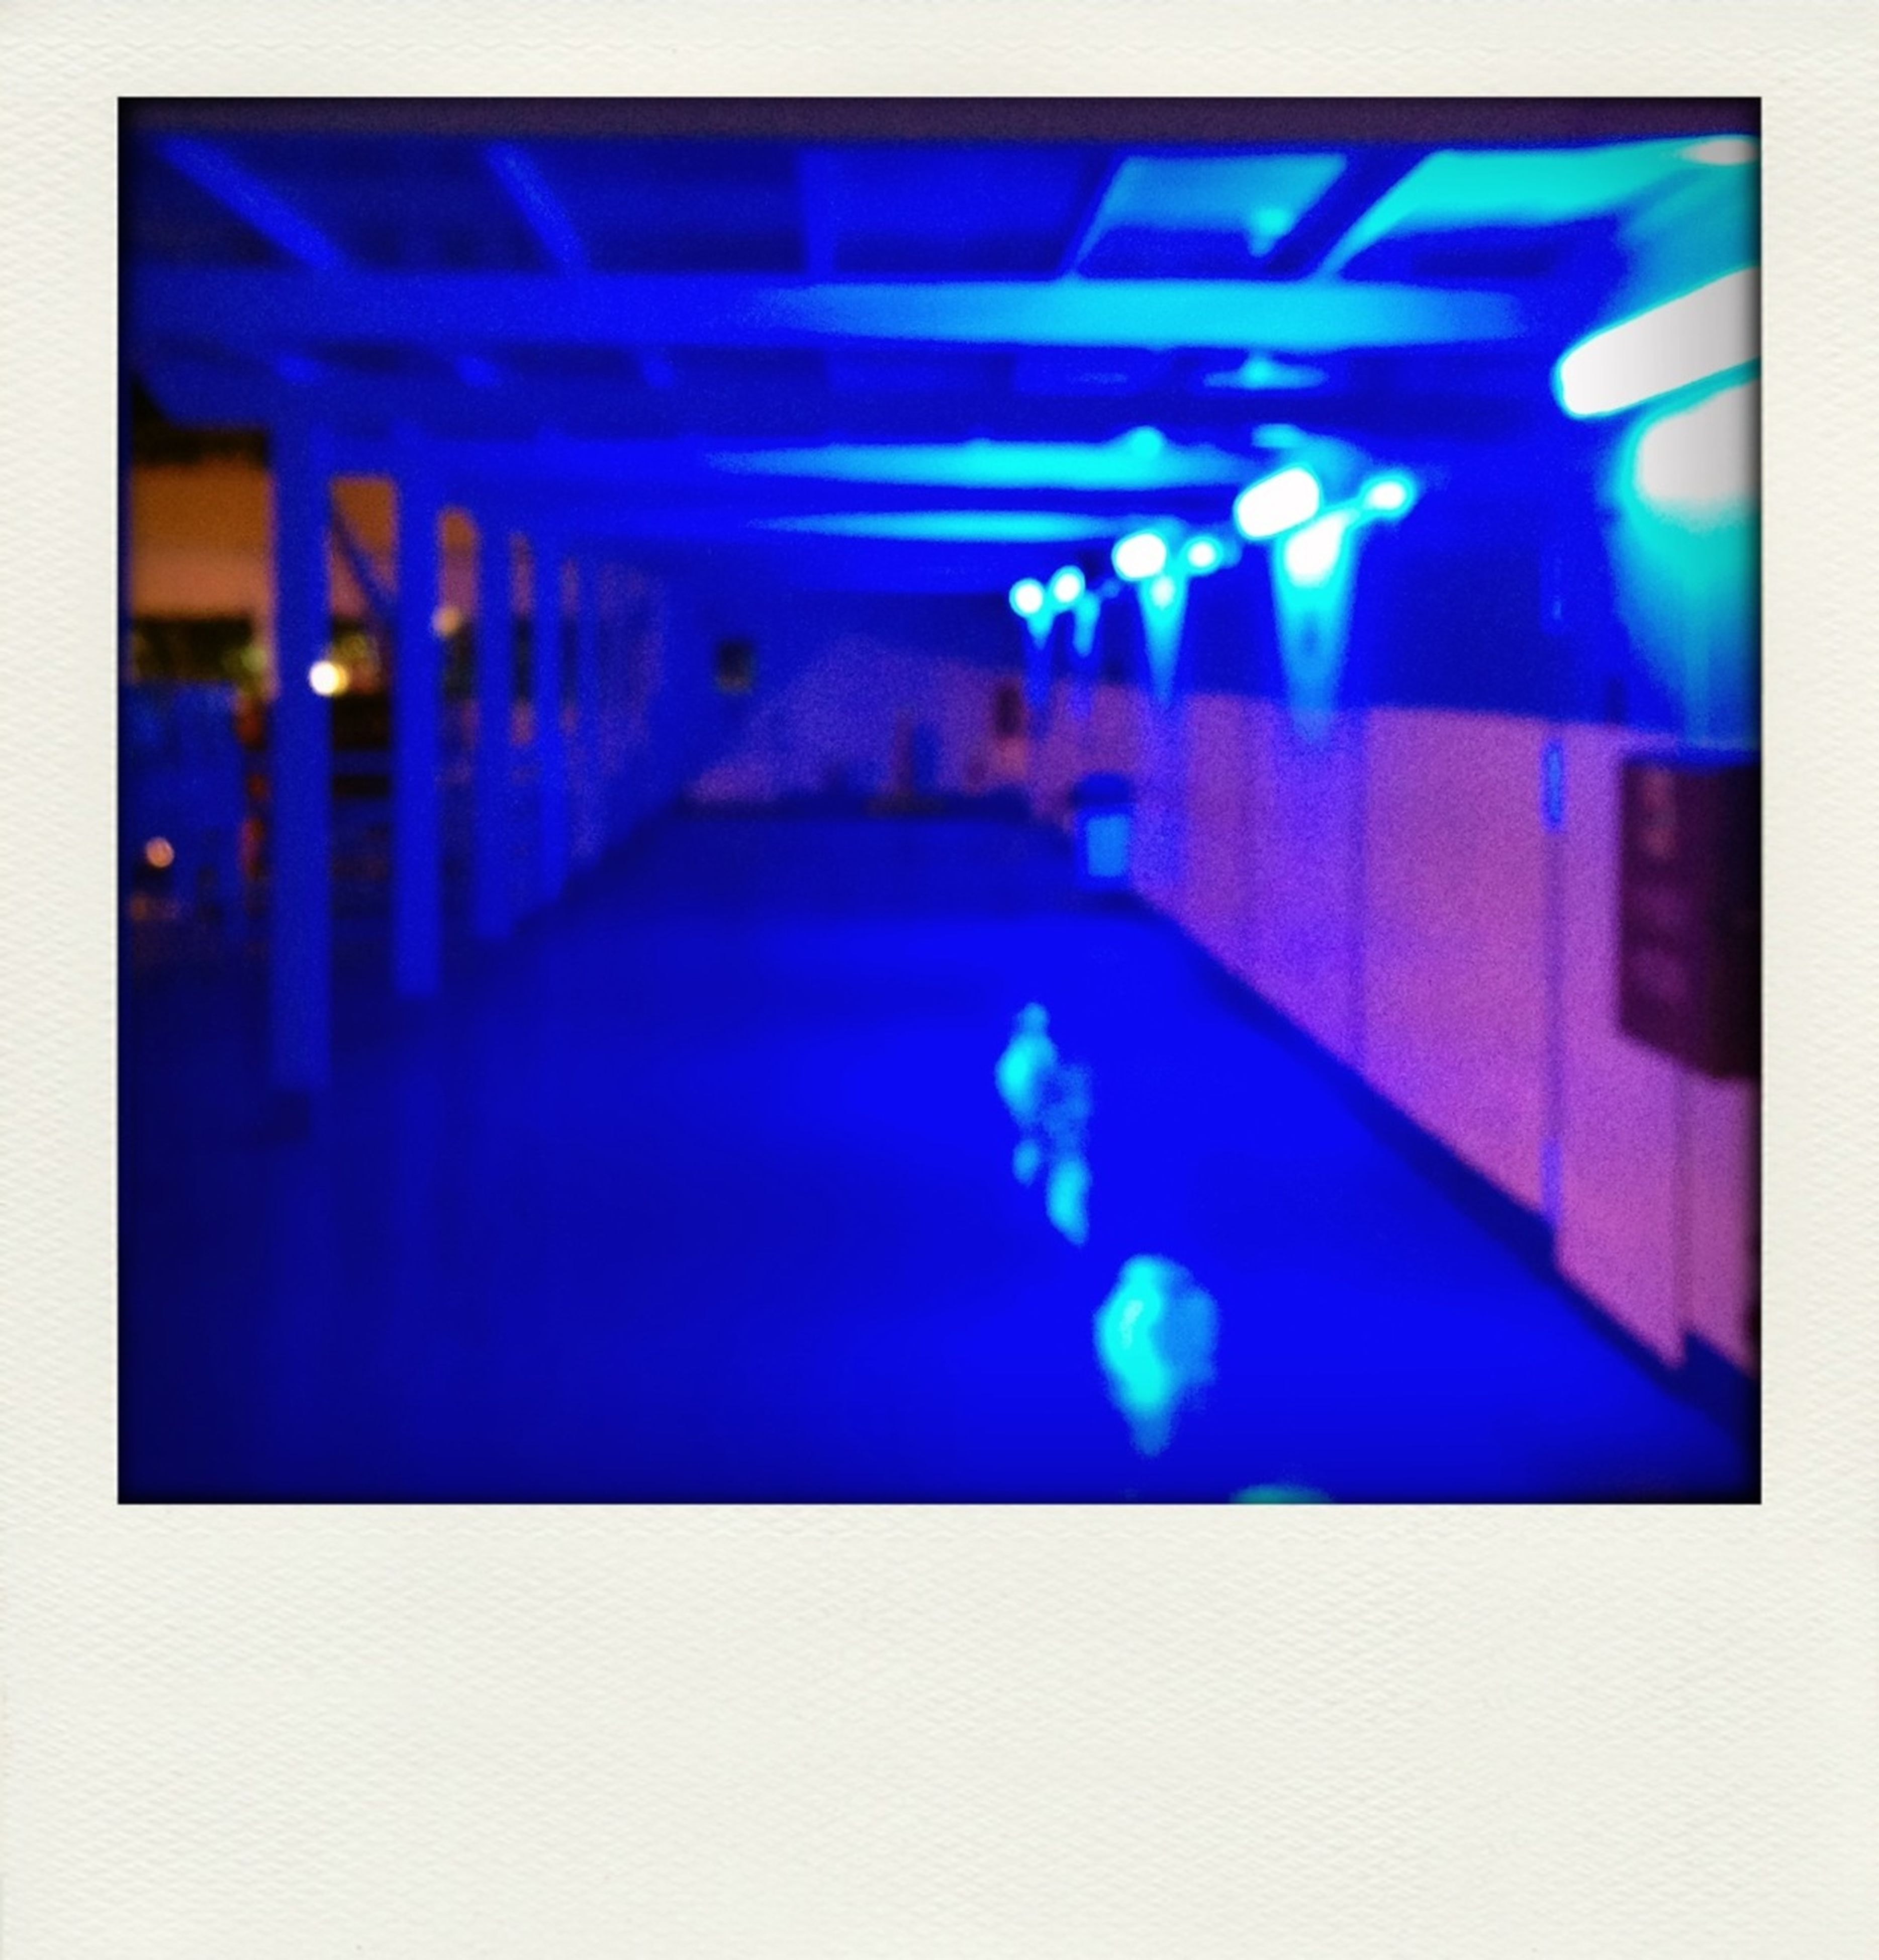 illuminated, transfer print, blue, night, indoors, lighting equipment, auto post production filter, light - natural phenomenon, glowing, nightlife, defocused, electric light, light, light beam, nightclub, multi colored, abstract, technology, close-up, electricity